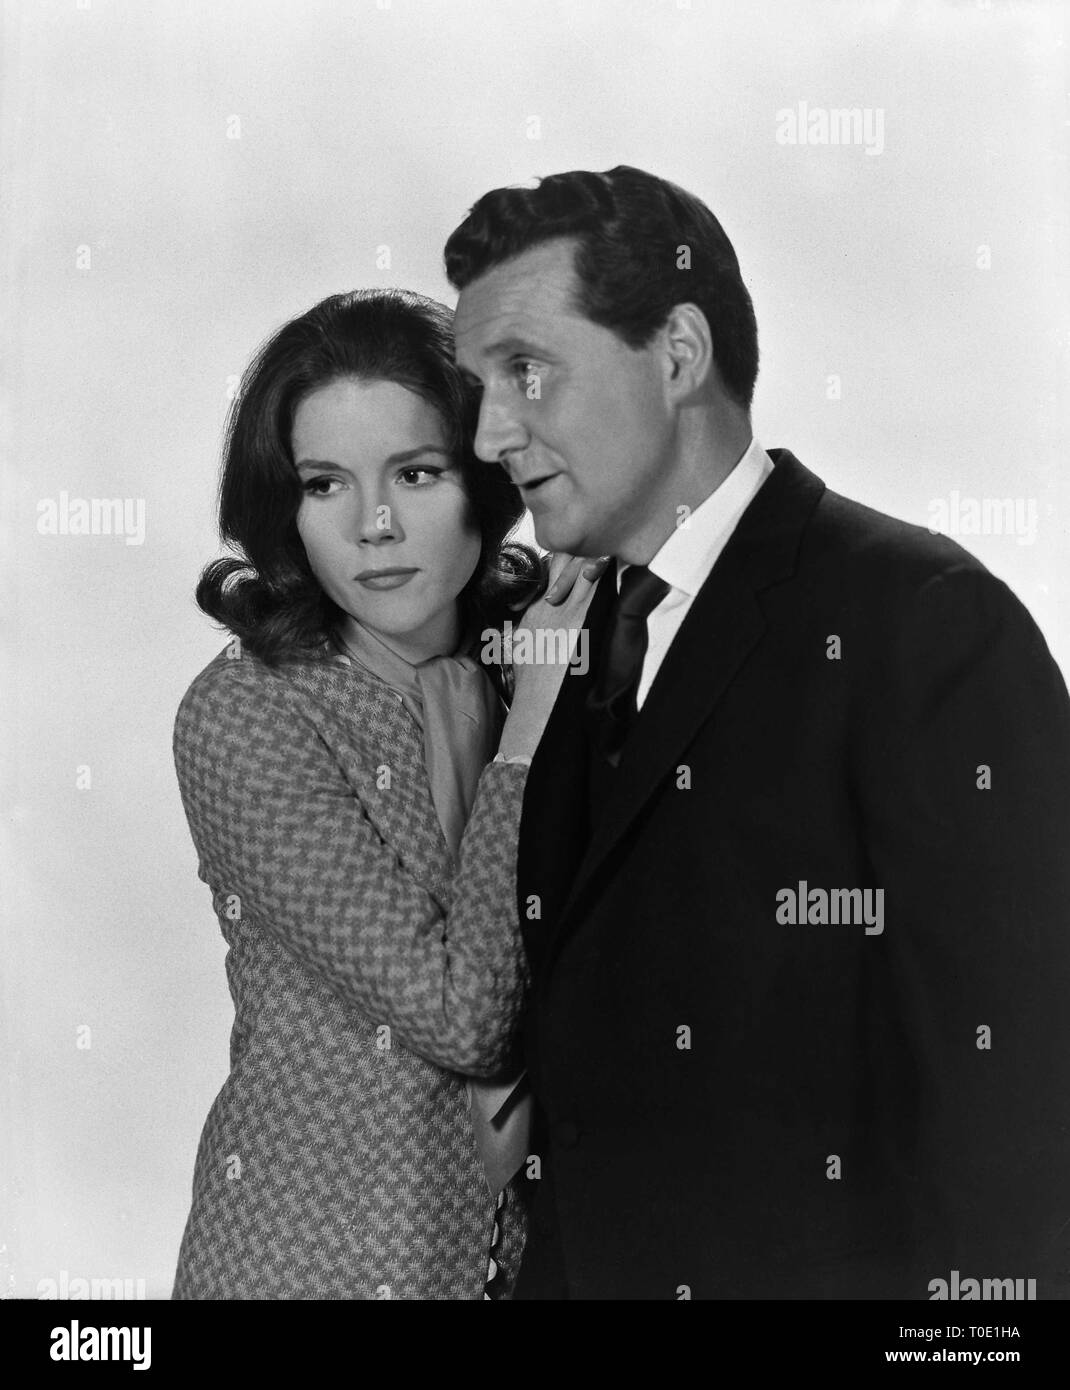 Patrick Macnee as John Steed Diana Rigg as Emma Peel THE AVENGERS 1965 ABC Weekend Television / Associated British Corporation - Stock Image